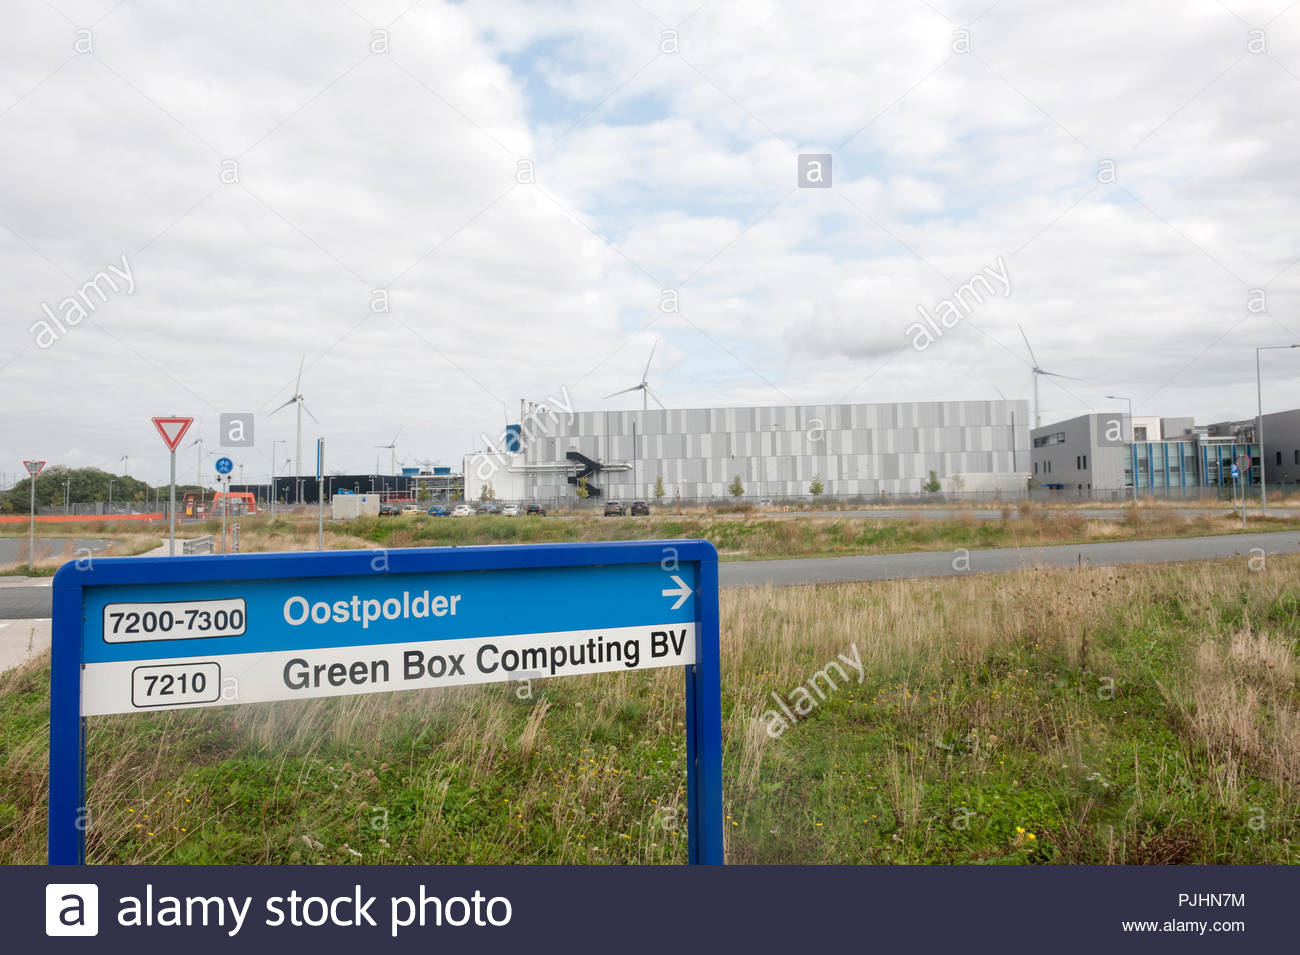 Eemshaven The Netherlands Google datacenter. Green Box Computing BV is a daughter company of Google. Stock Photo